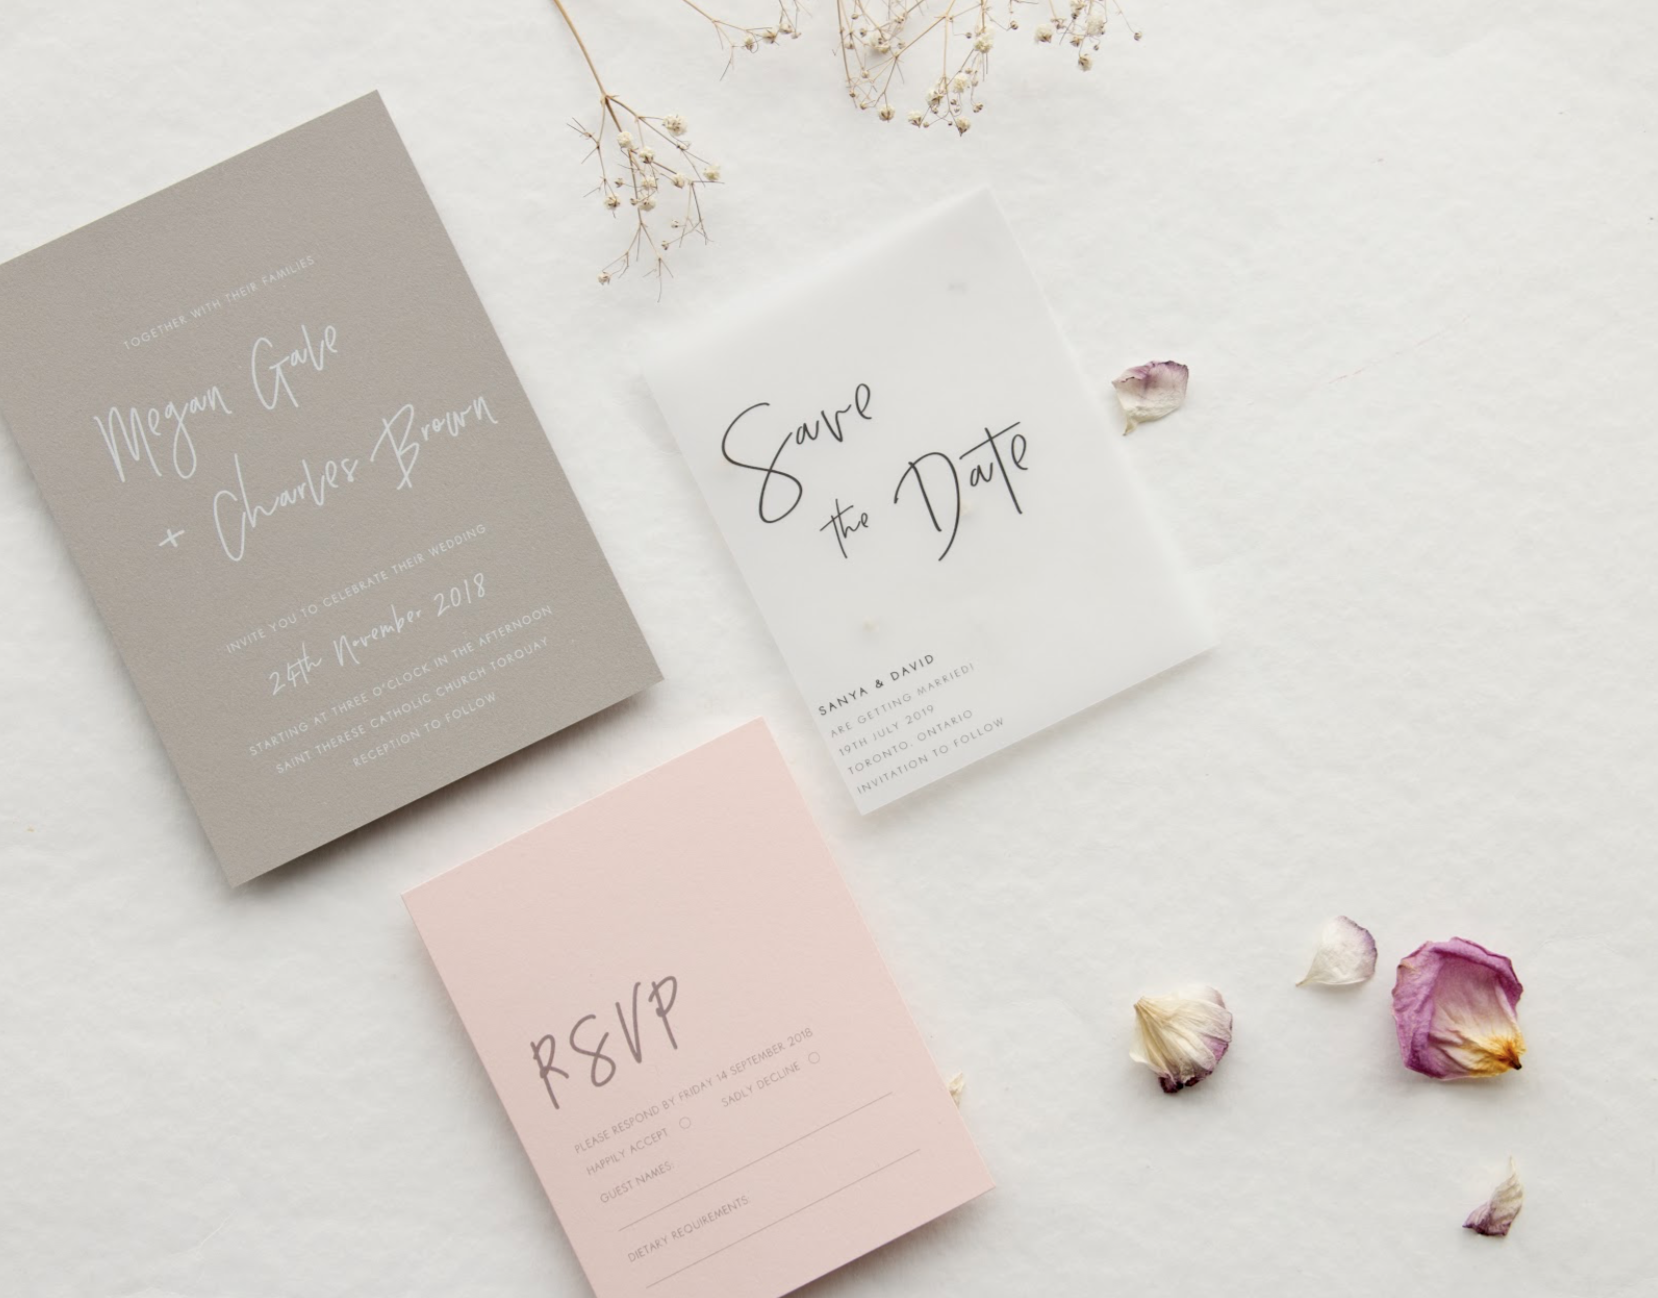 Save the Dates: Setting the Tone for Your Wedding {Guest Post